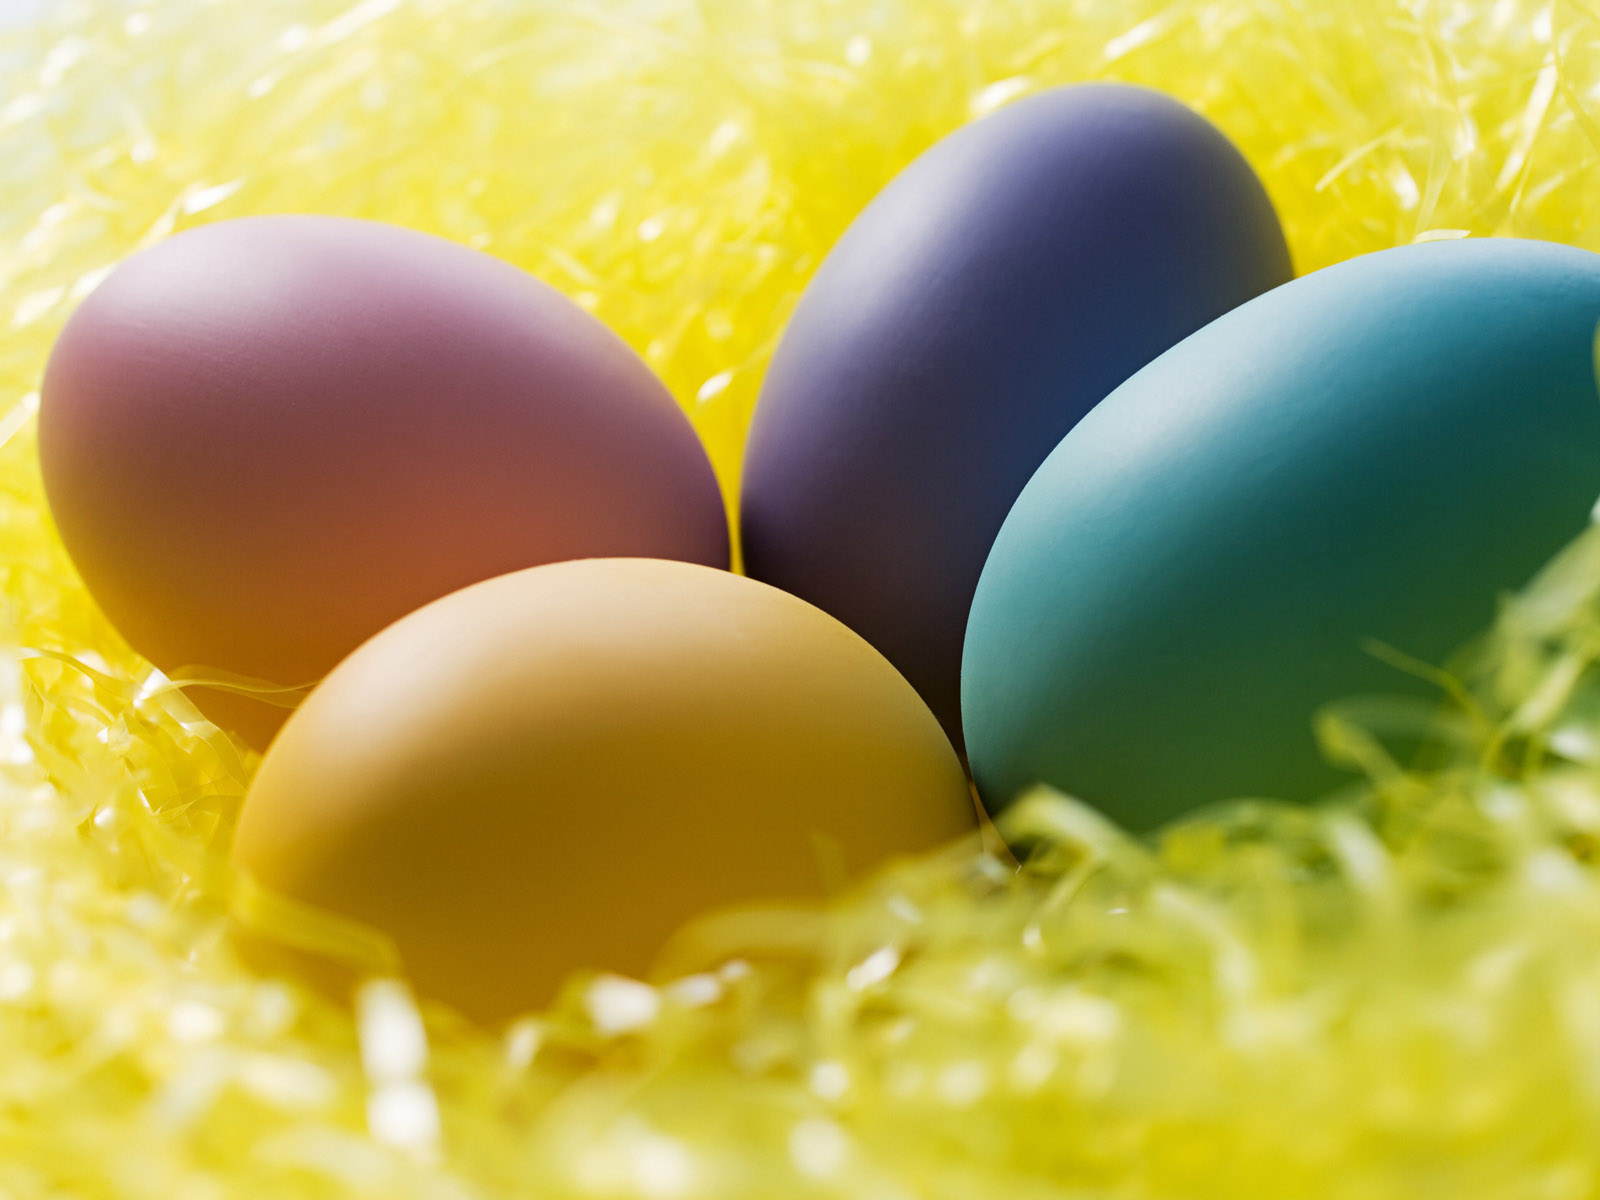 chicks and easter eggs wallpapers for your desktop backgrounds 1600x1200